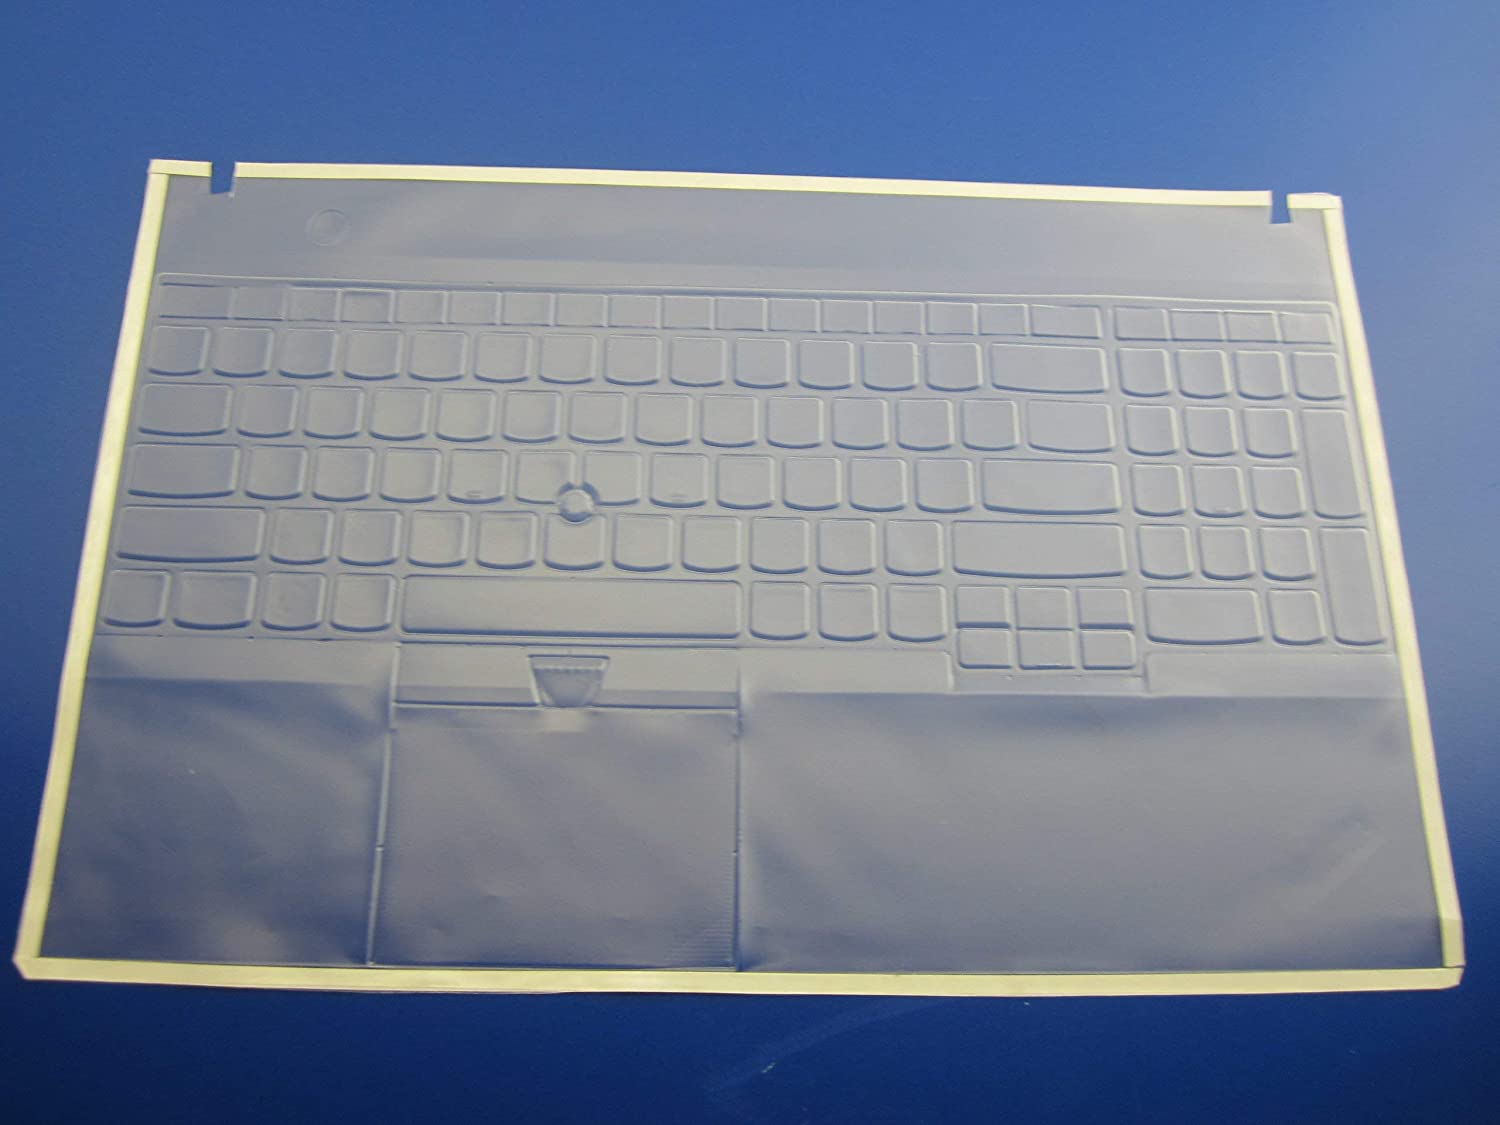 Viziflex  Biosafe Anti Microbial Keyboard cover compatible with Microsoft Wired 200 Model 1406 Keyboard not included Part A.M 437G104